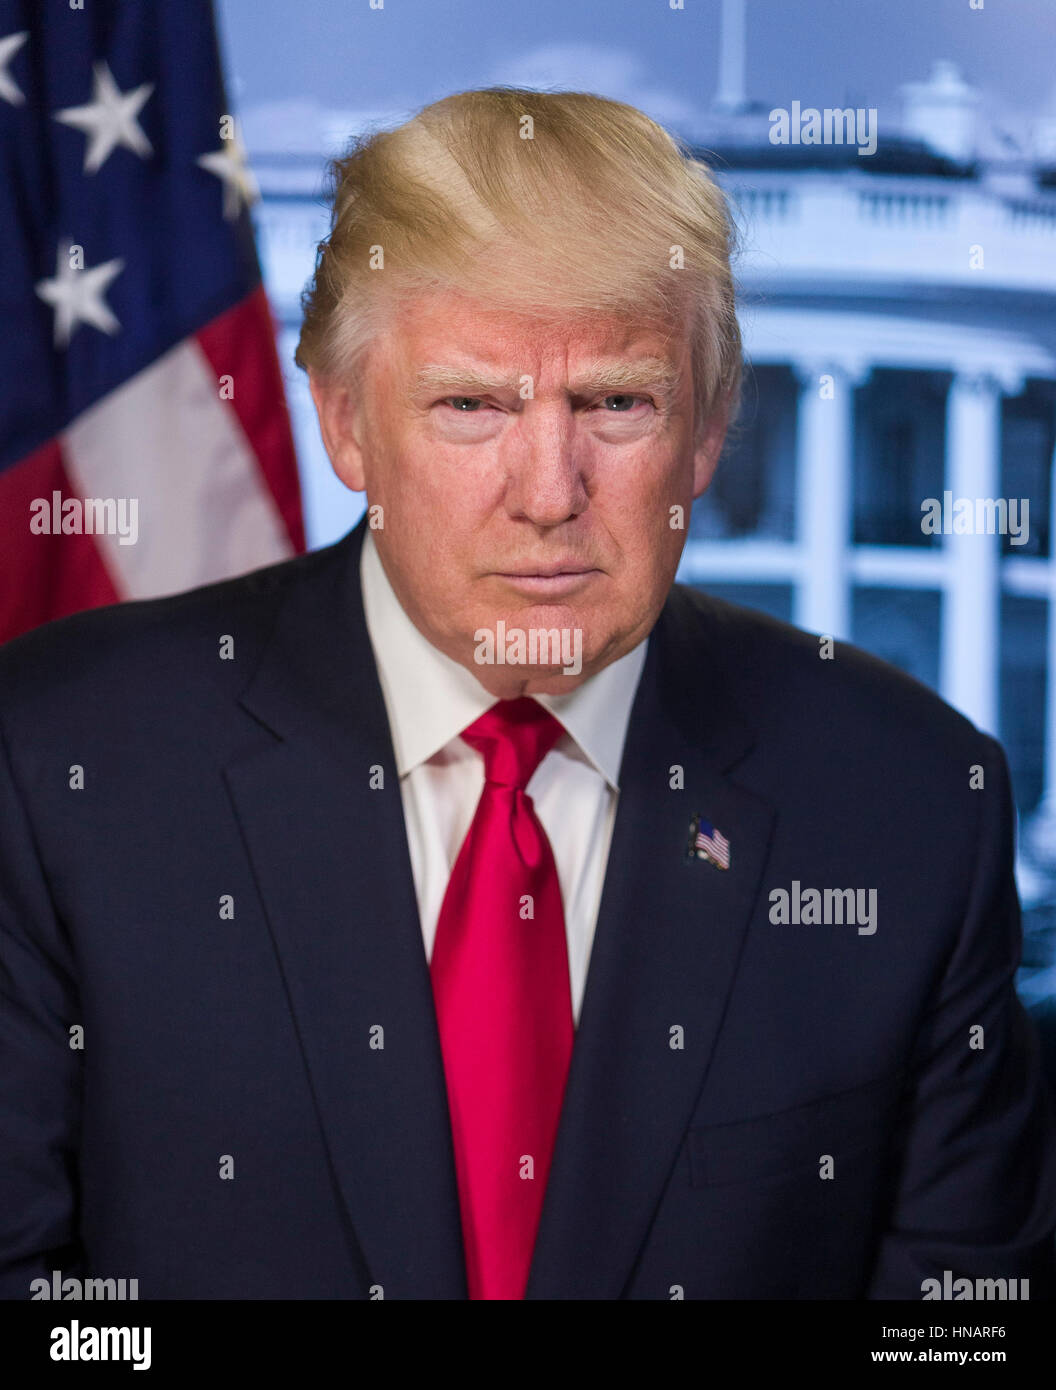 President of the United States Donald Trump - Stock Image